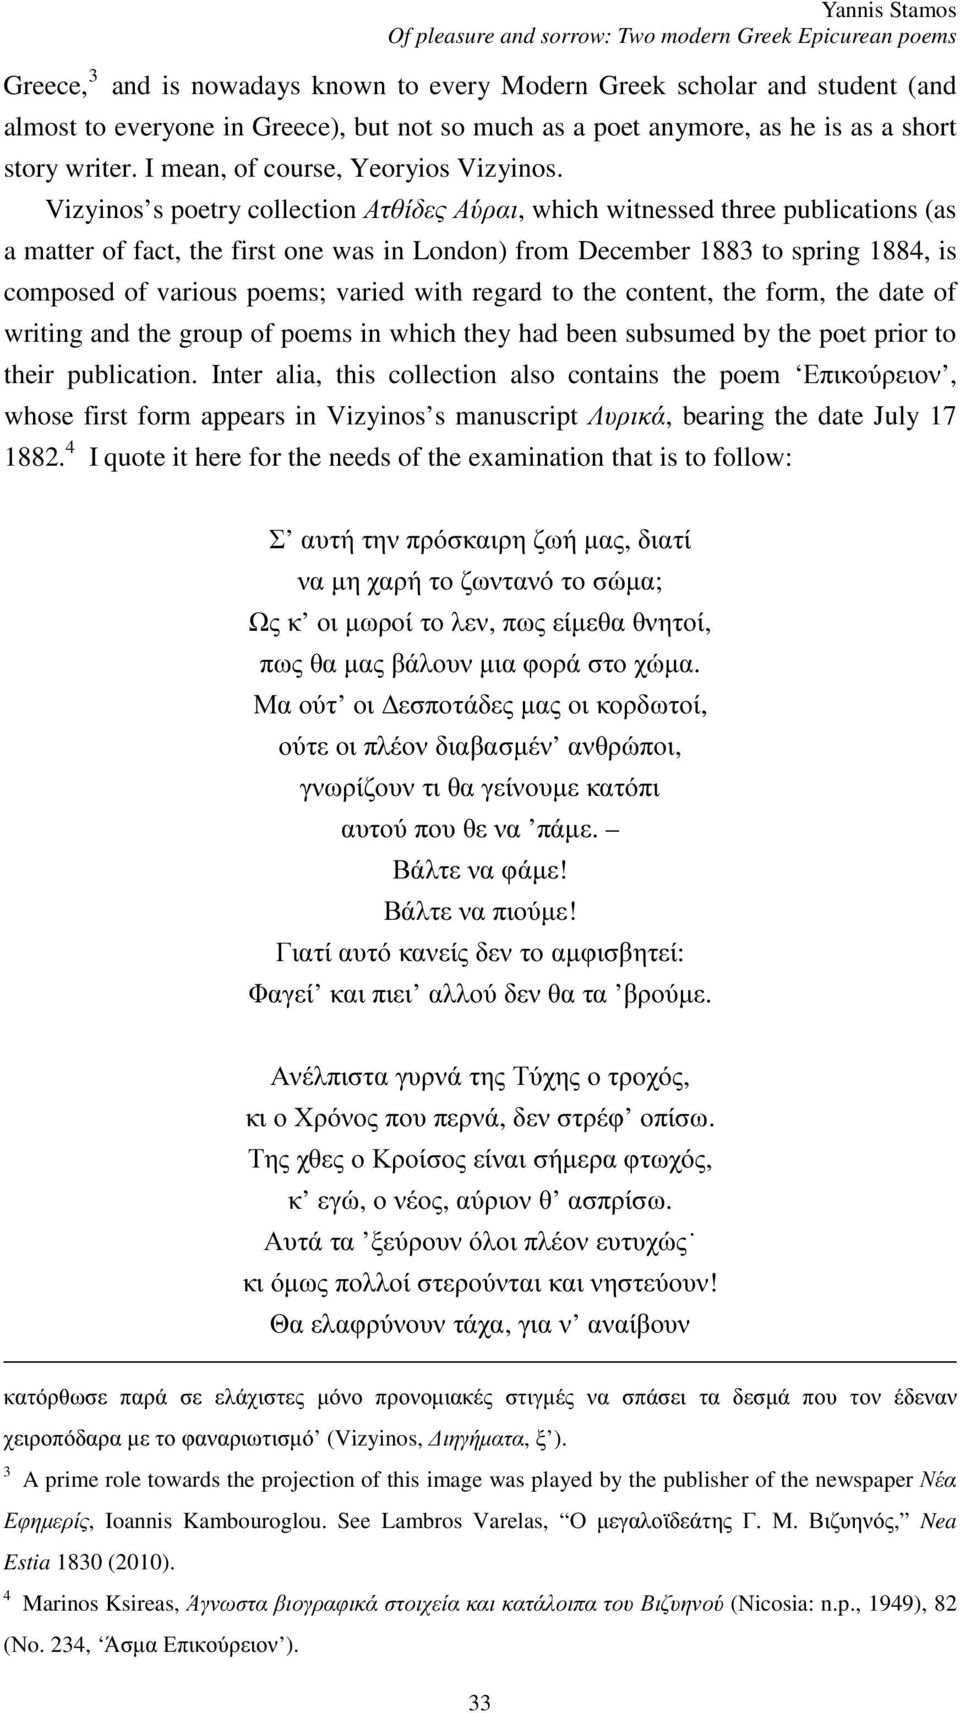 Vizyinos s poetry collection Ατθίδες Αύραι, which witnessed three publications (as a matter of fact, the first one was in London) from December 1883 to spring 1884, is composed of various poems;